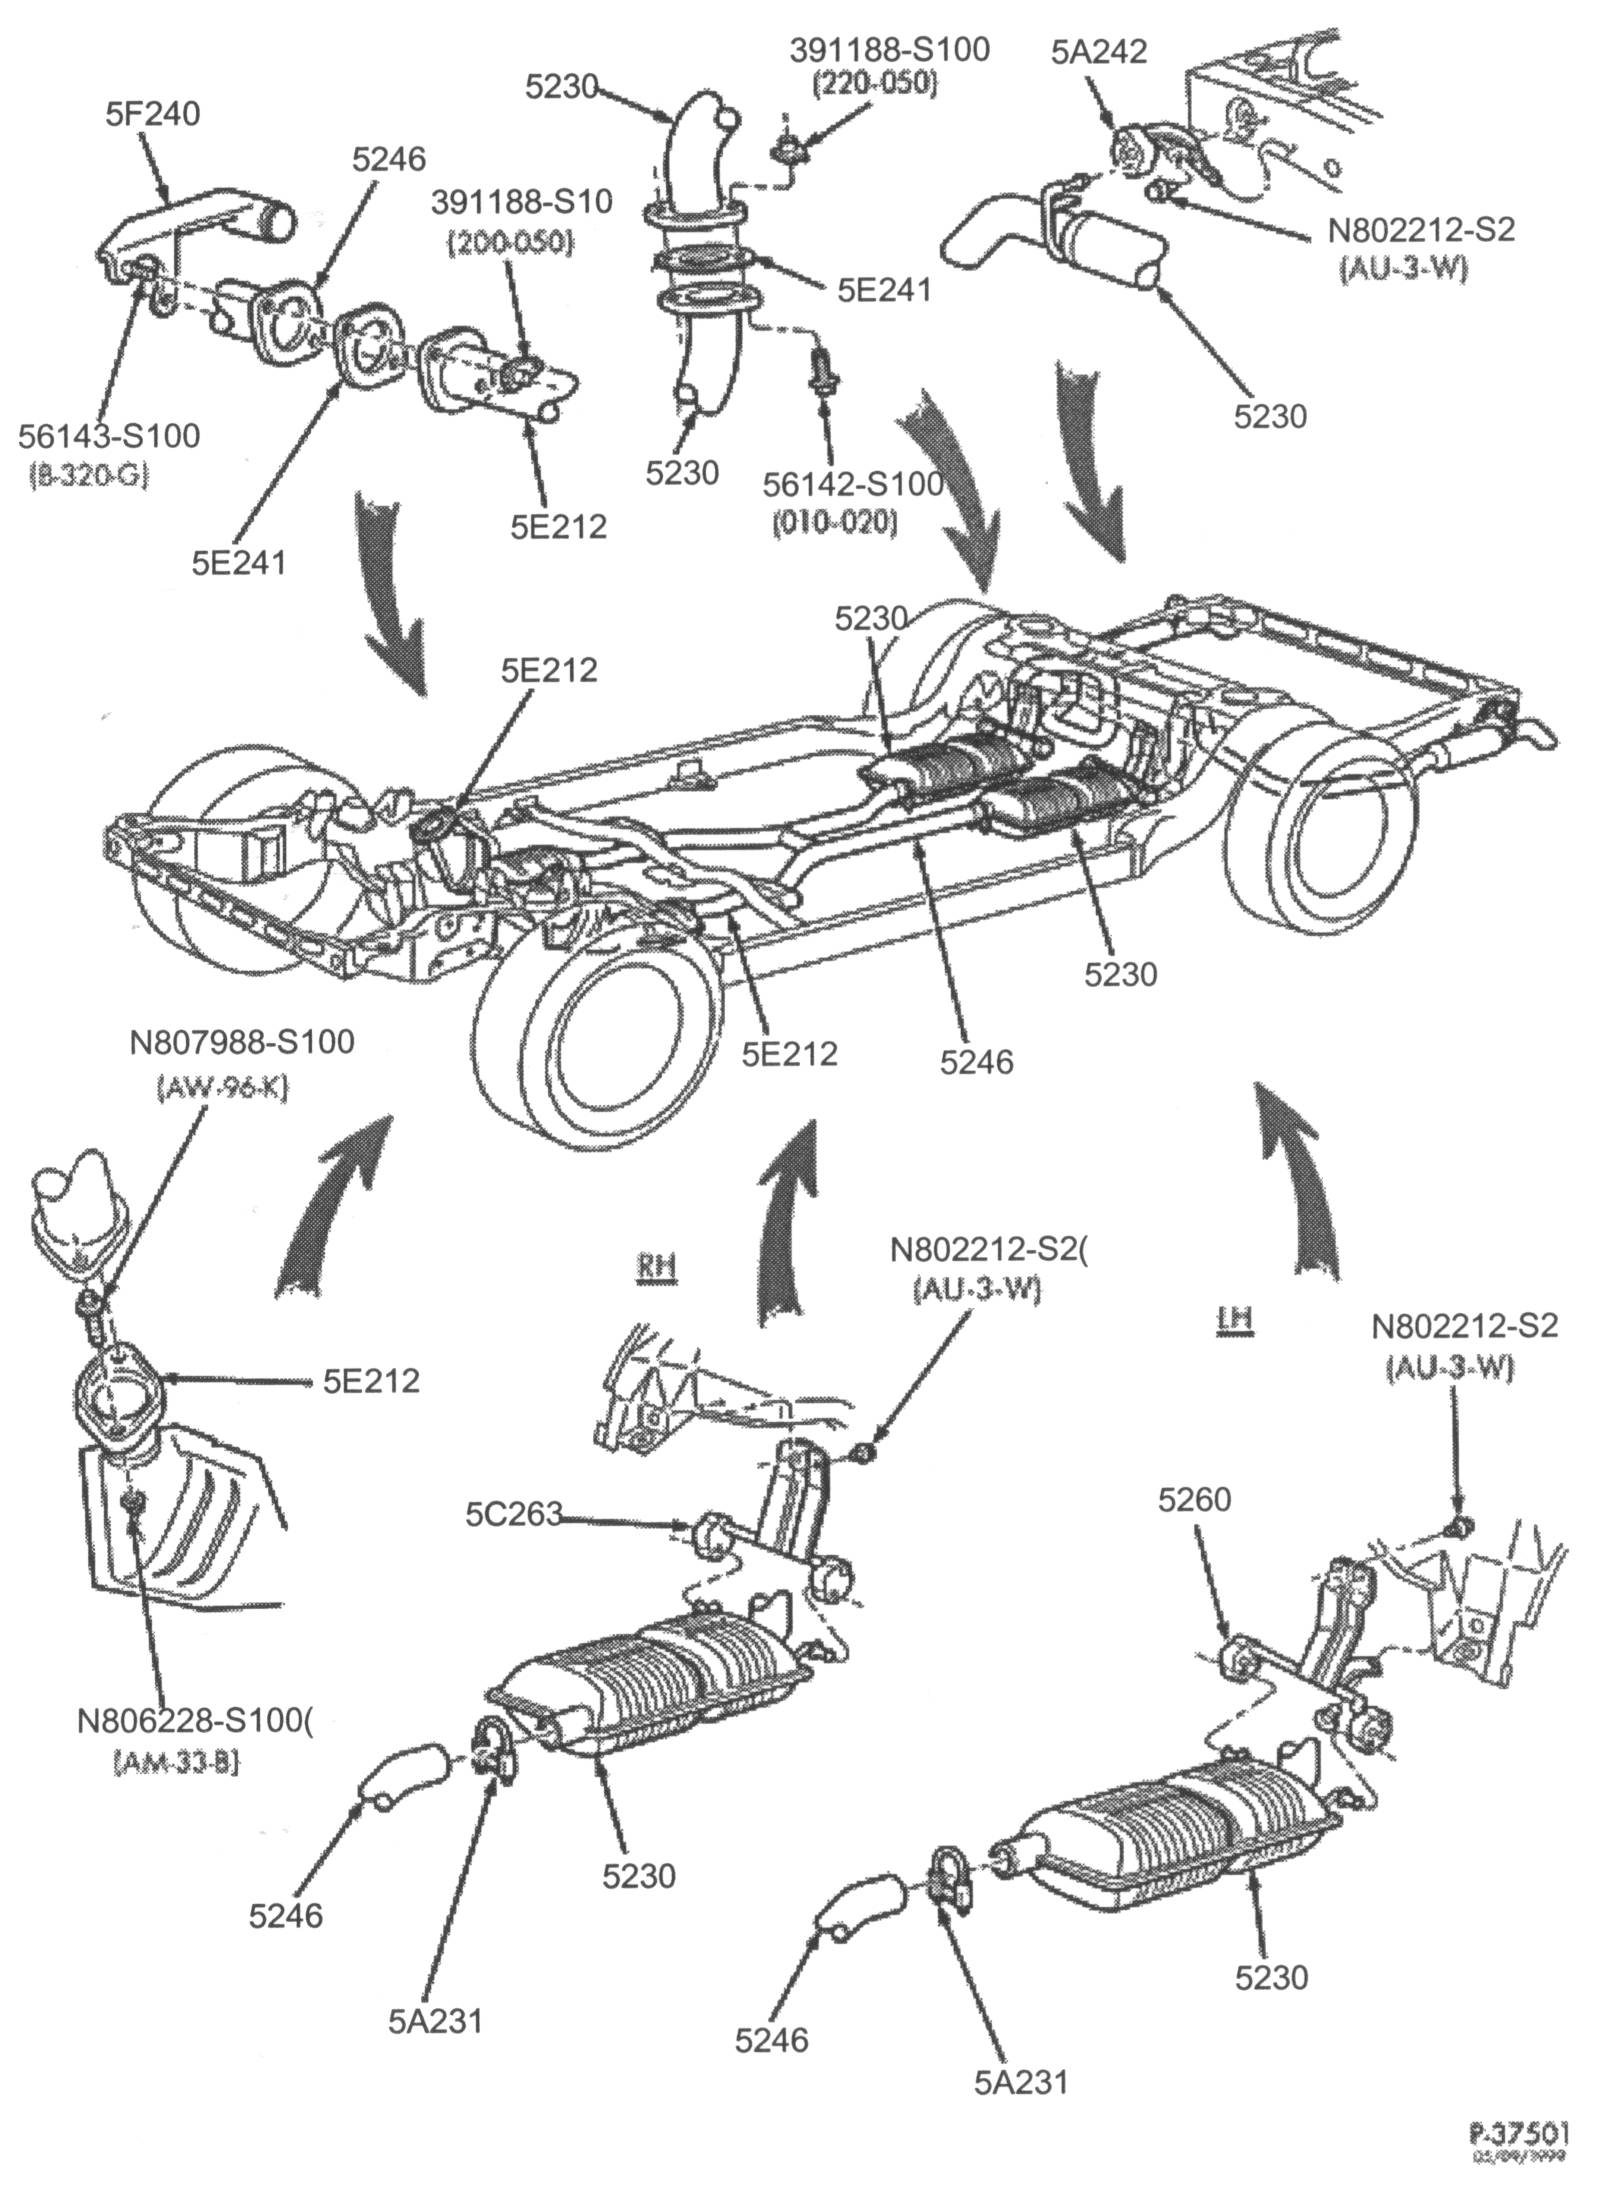 Ford Crown Victoria Parts Diagram Wiring Electricity 1993 Diagrams Police Interceptor Exhaust Rh Pantherbb Com